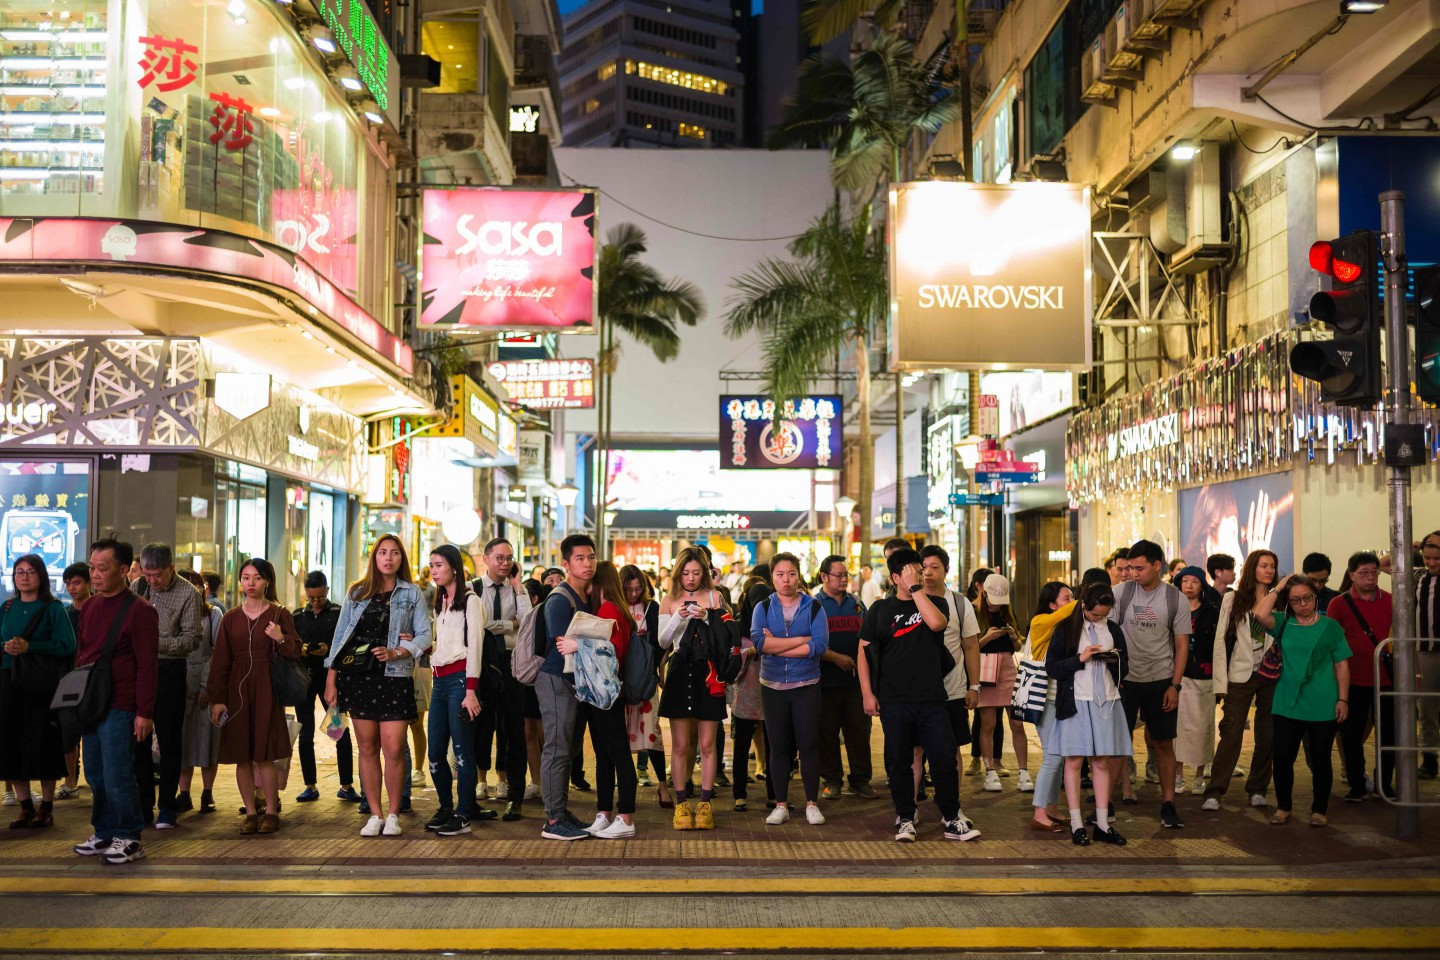 Hong Kong is an international metropolis and both Chinese and English are the official languages. Pictured here are pedestrians preparing to cross a road in the popular shopping district of Causeway Bay in Hong Kong. (Photo by Anthony Wallace/AFP)